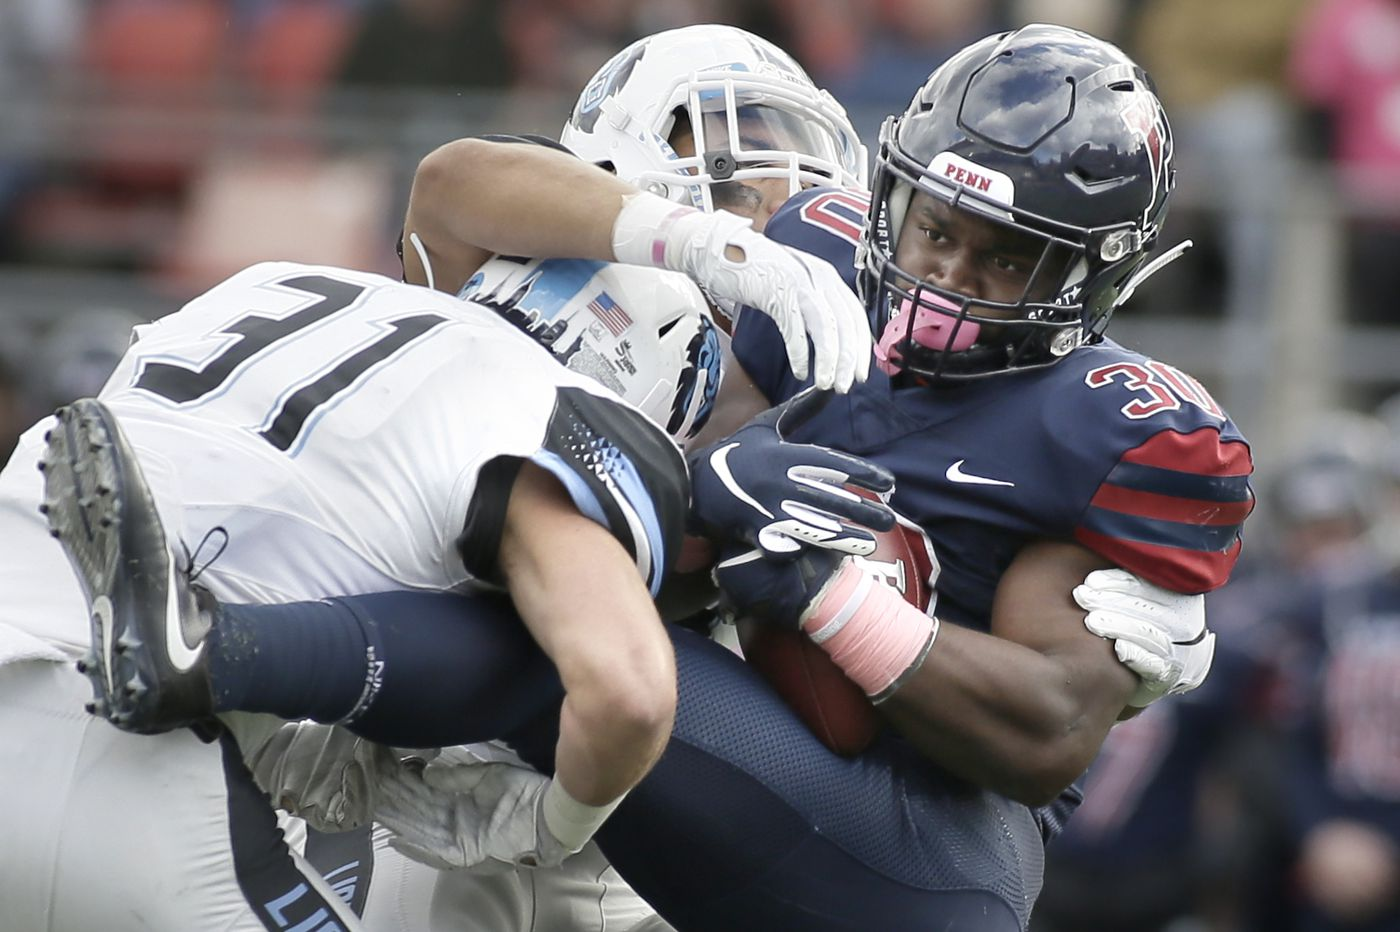 Penn opens Ivy League play Friday against visiting Dartmouth